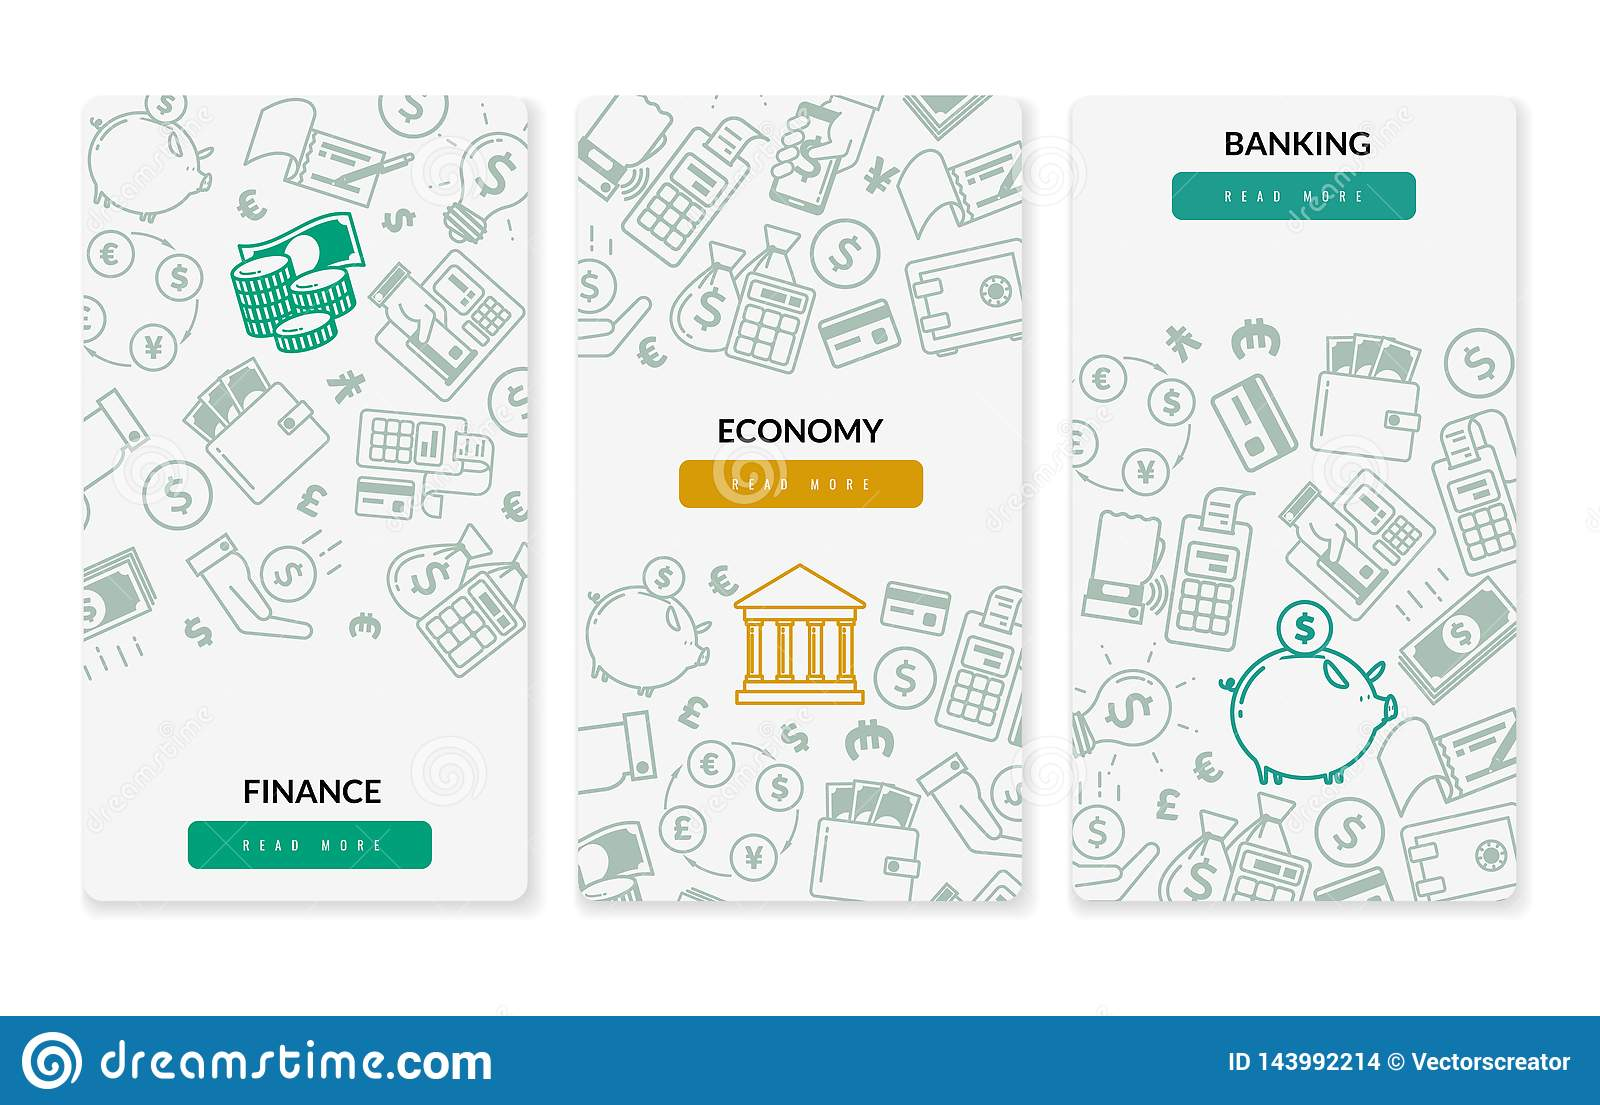 Finance banking icons vertical banners. Three vertical banners on white background